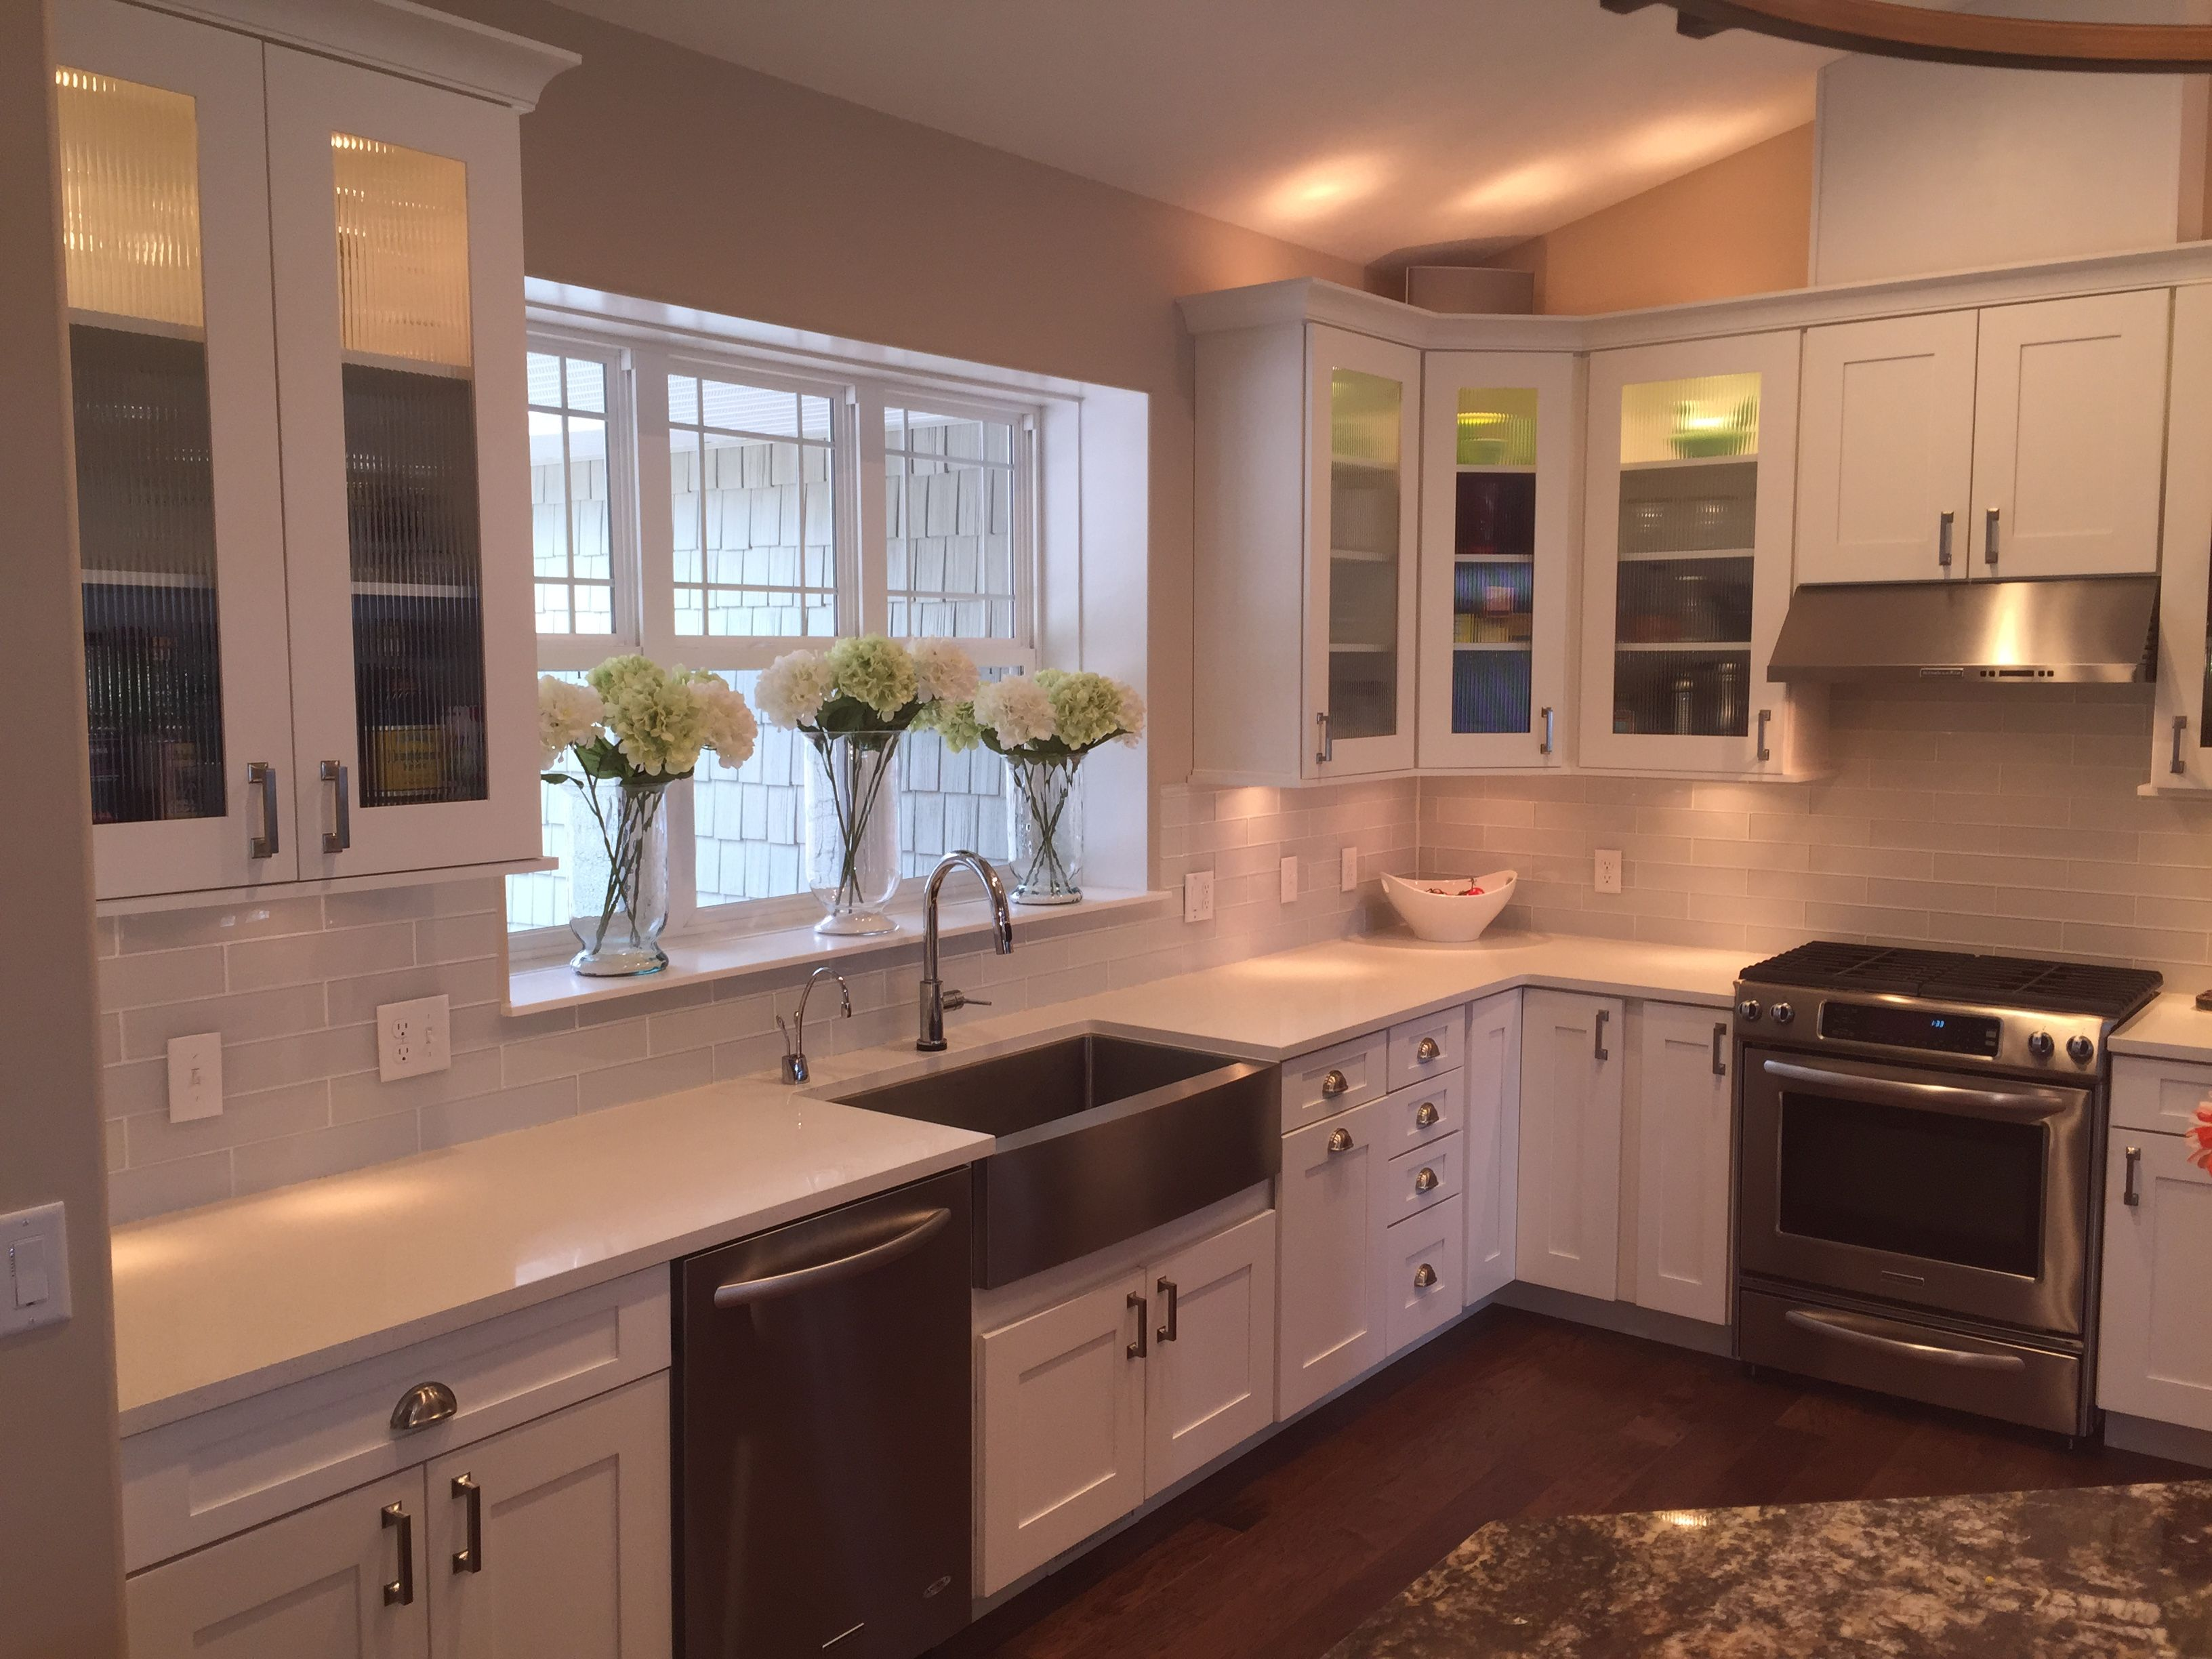 hickory shaker style kitchen cabinets kohler faucet love the big window and deep sill white